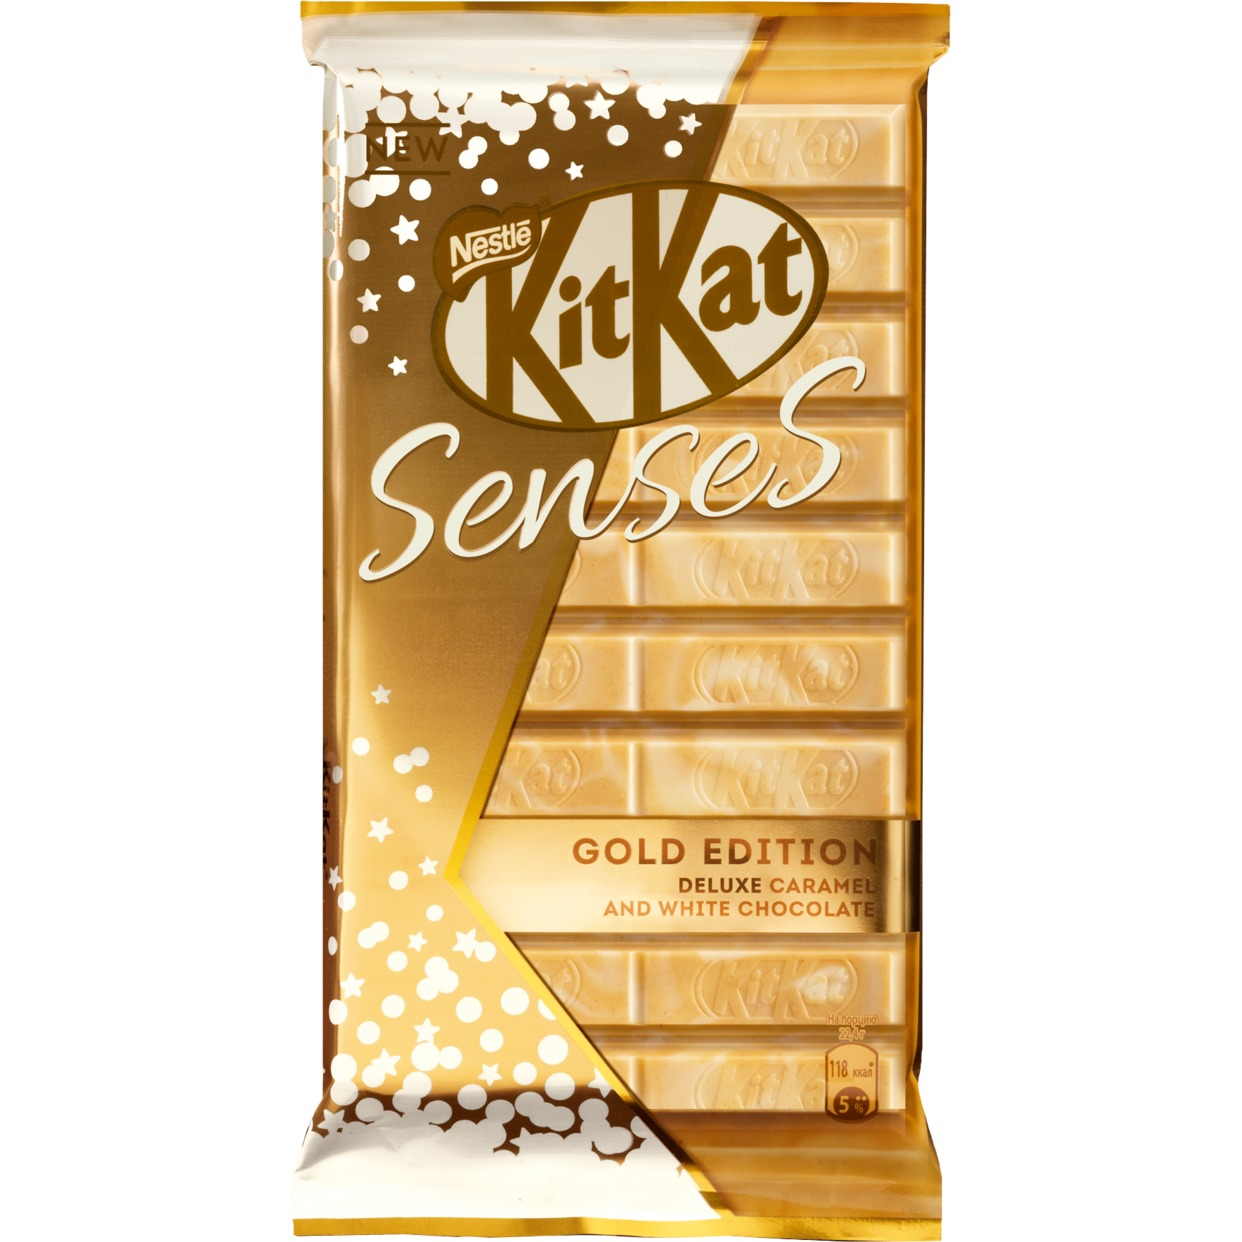 KITKAT SENSES GOLD EDITION. DELUXE CARAMEL AND WHITE CHOCOLATE. БЕЛ ШОК С ДОБ КАР, БЕЛЫЙ ШОК И МОЛ ШОКОЛАД С ХРУСТ ВАФЛЕЙ 112г